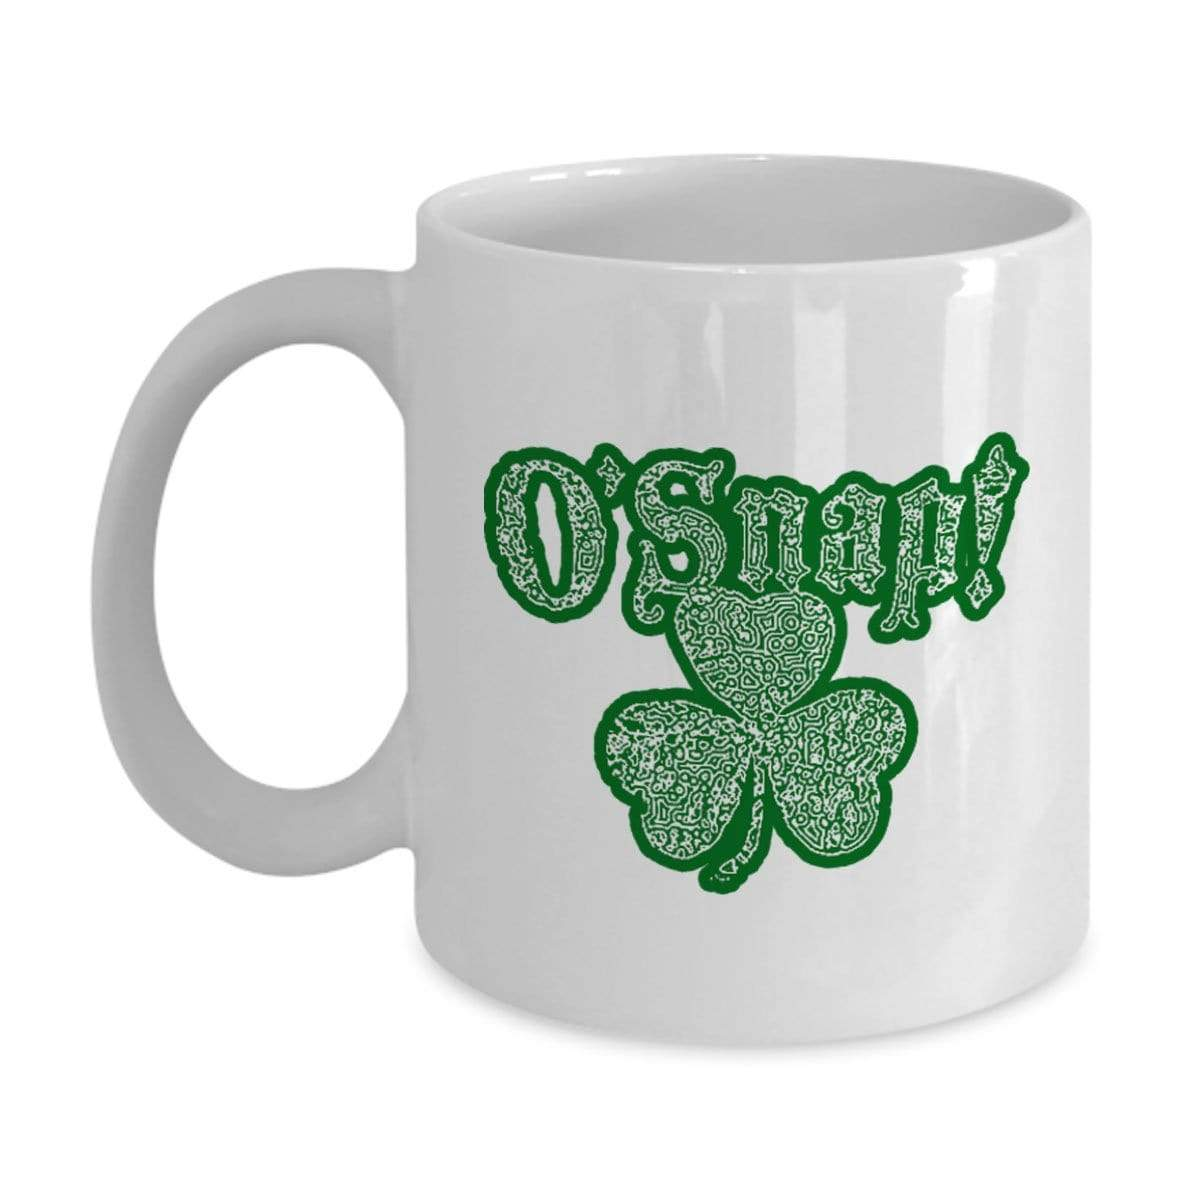 SunFrog-Busted MUG 11oz Mug / White O'Snap Irish Shamrock Mug